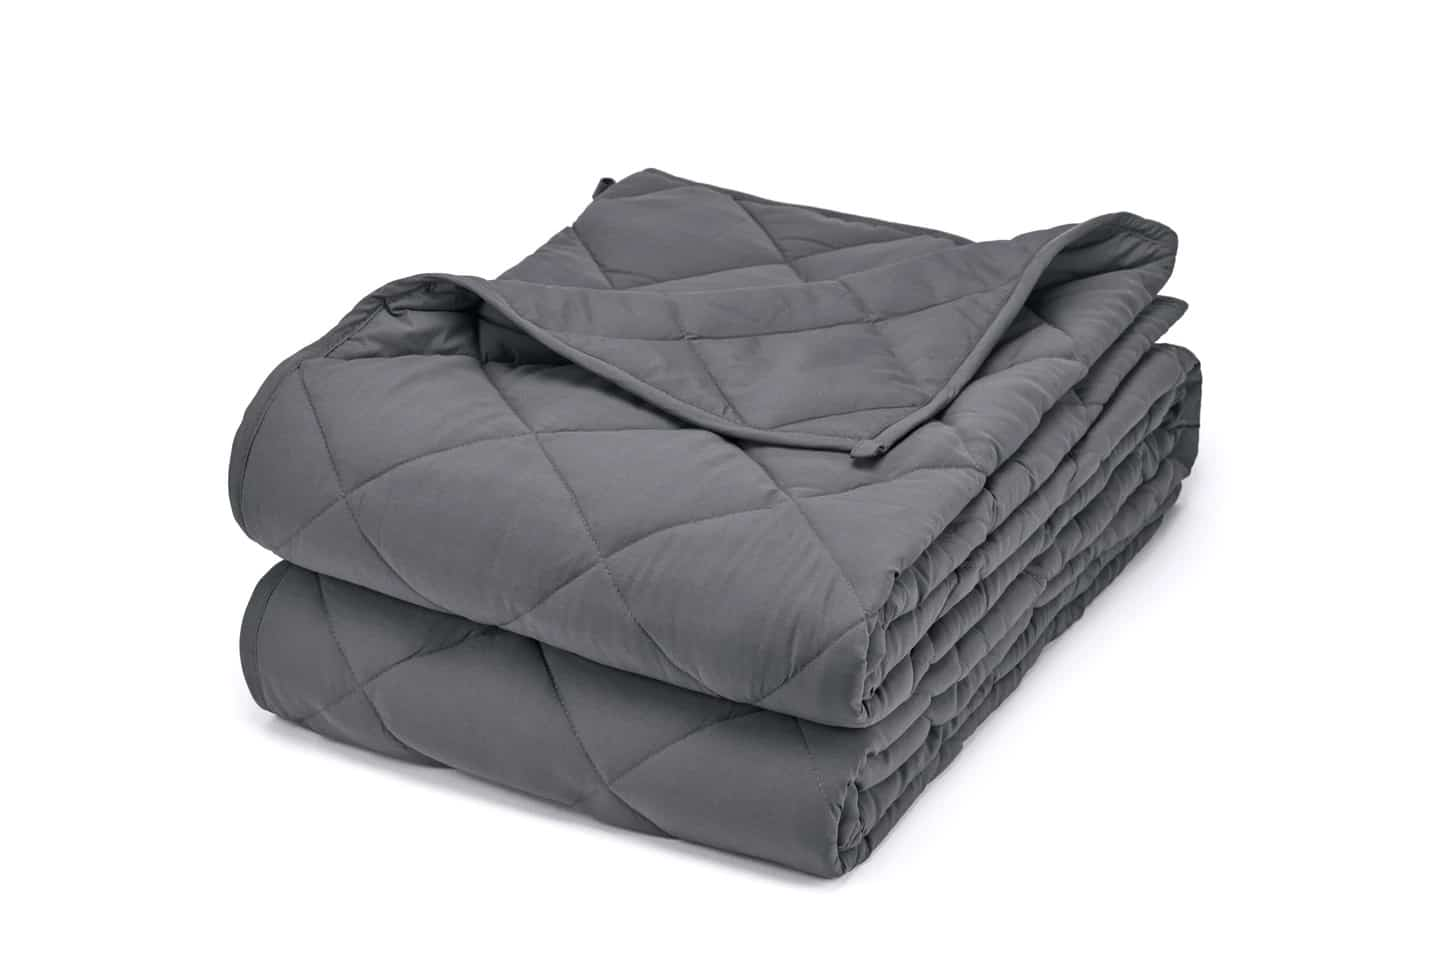 dark charcoal weight blanket well priced